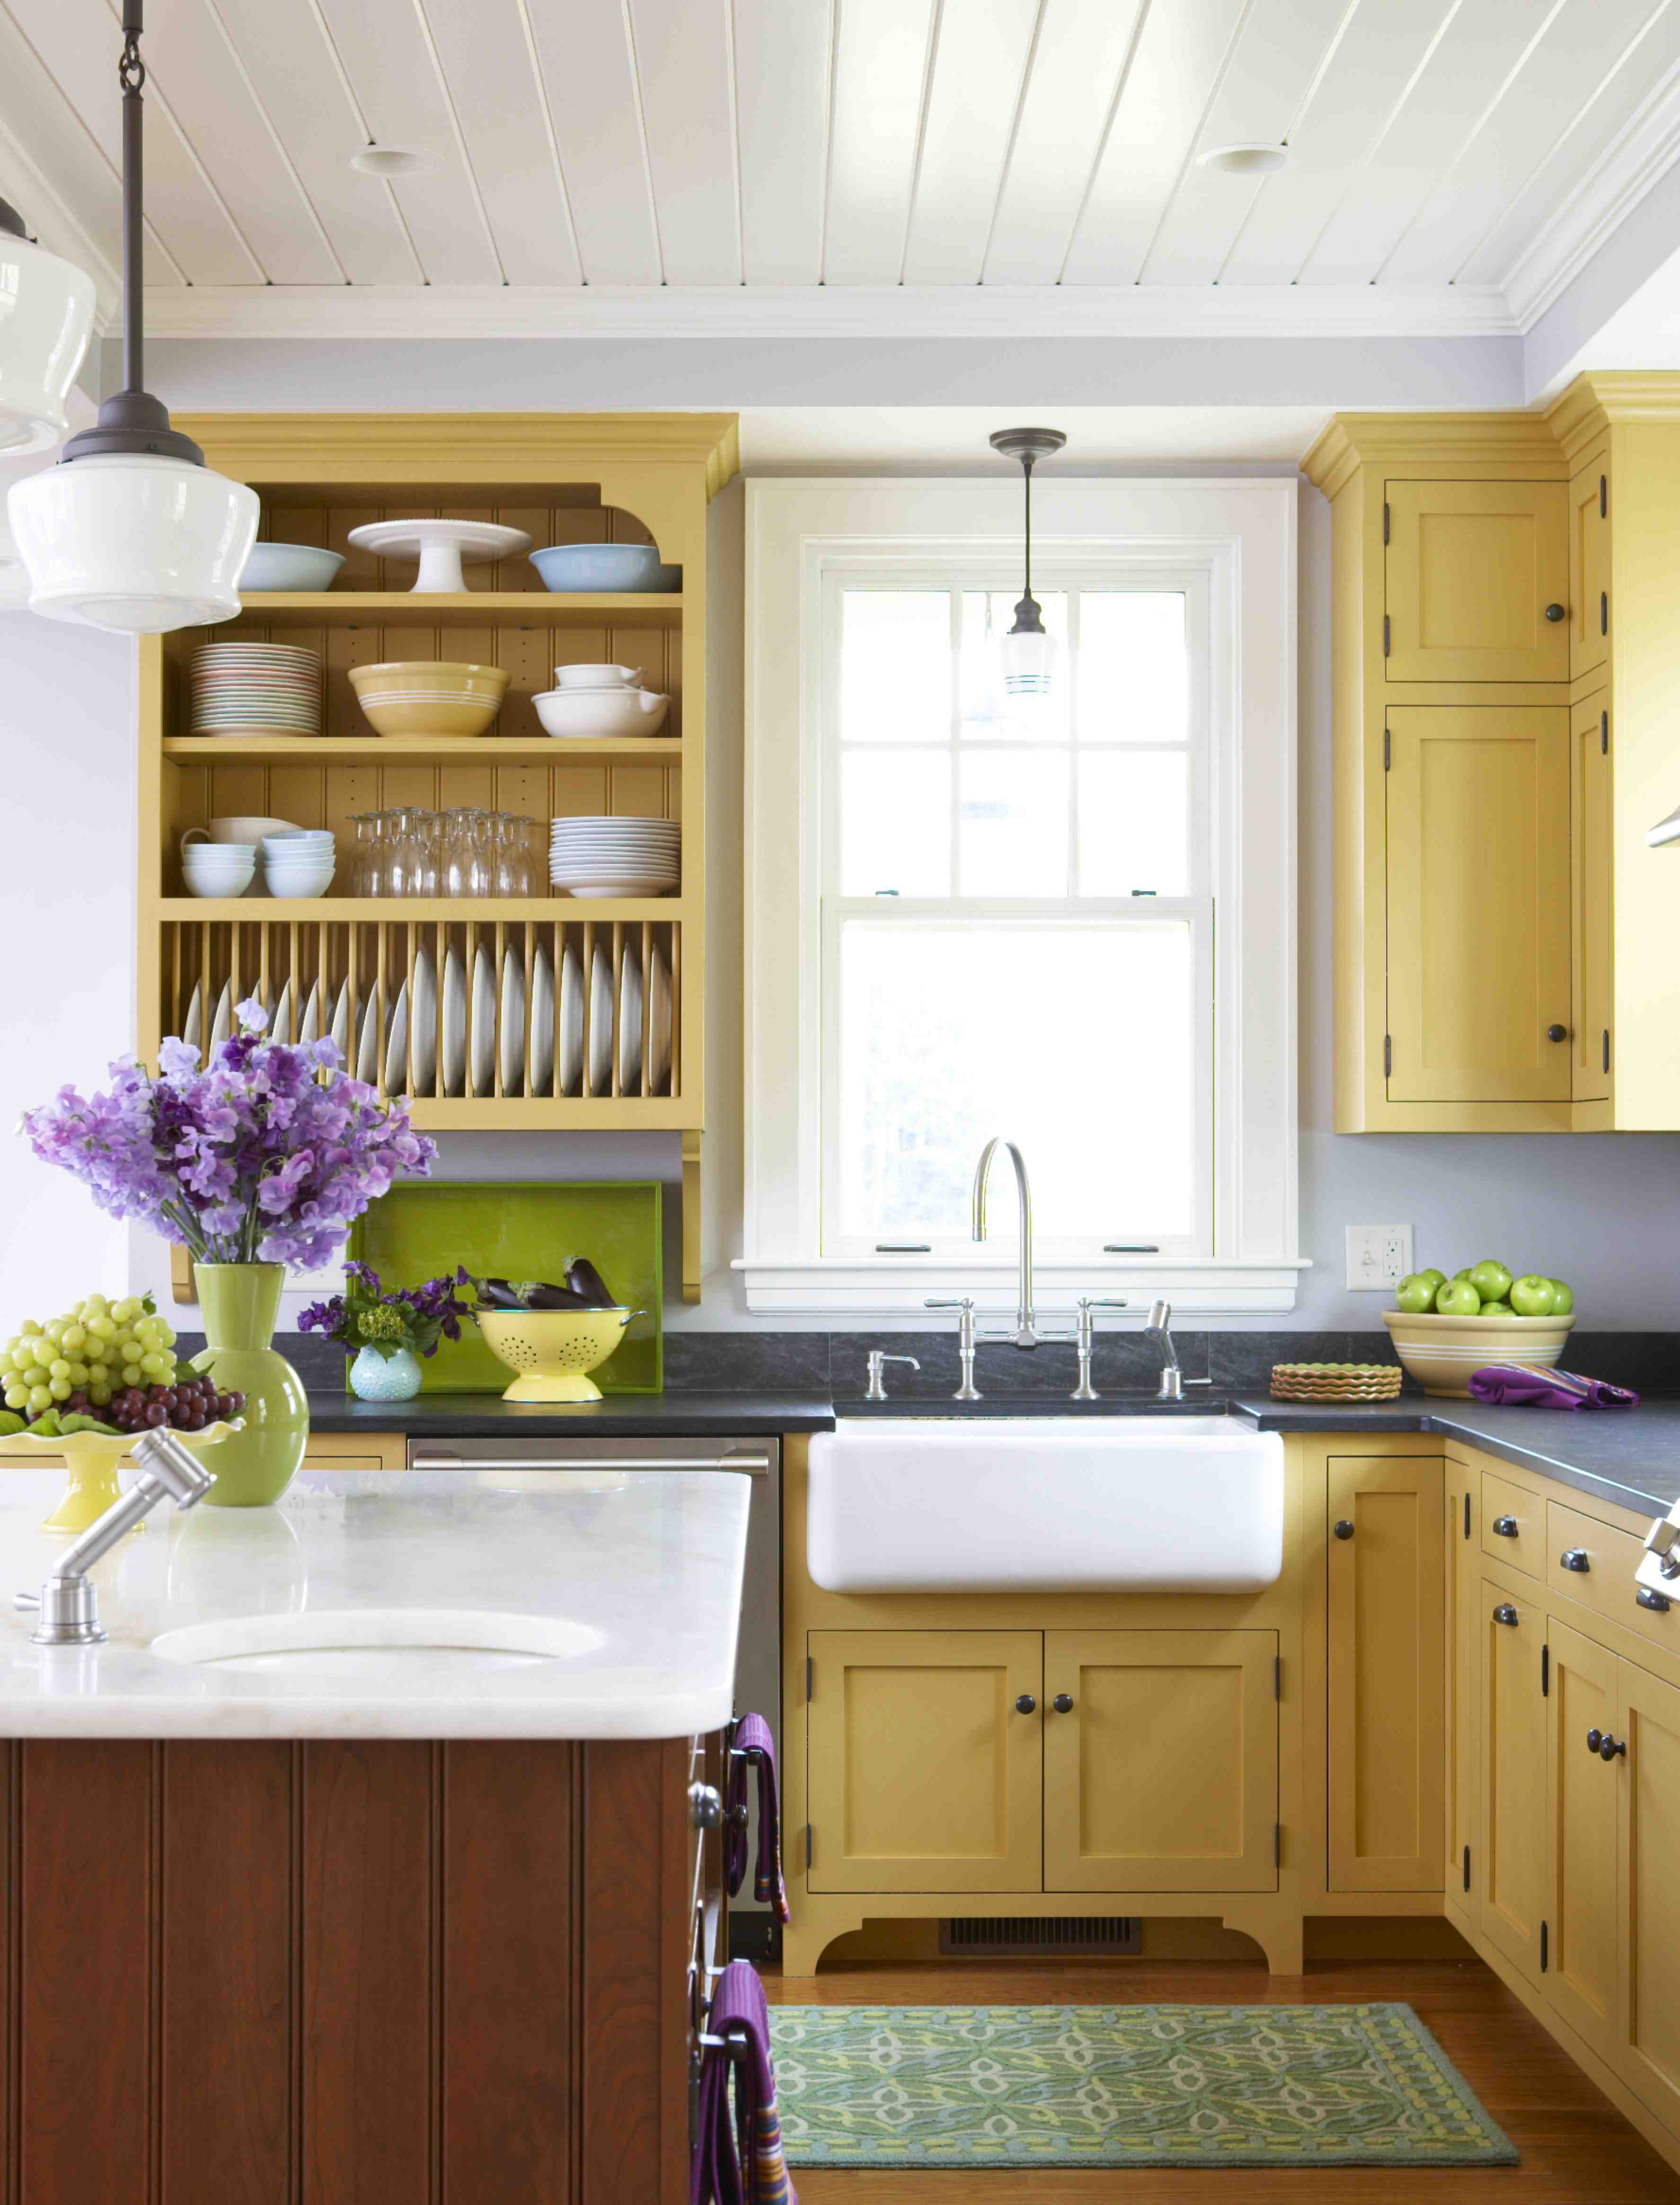 Kitchen Design Yellow Cabinets My Favorite Kitchens Of 2010 Stacystyle 39s Blog